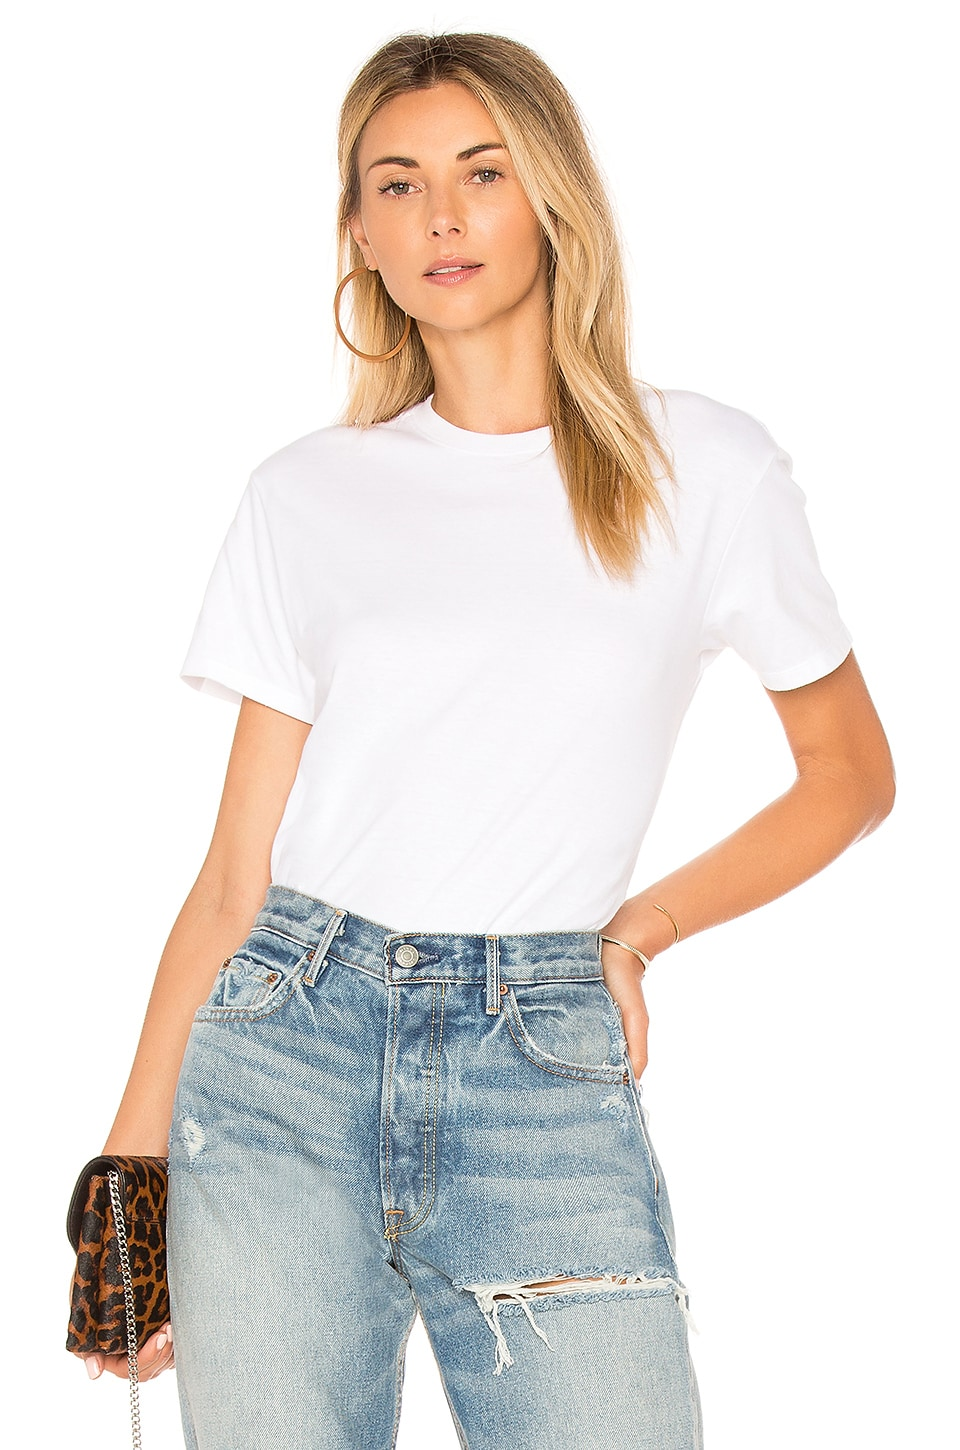 Hanes x Karla T-SHIRT THE CREW